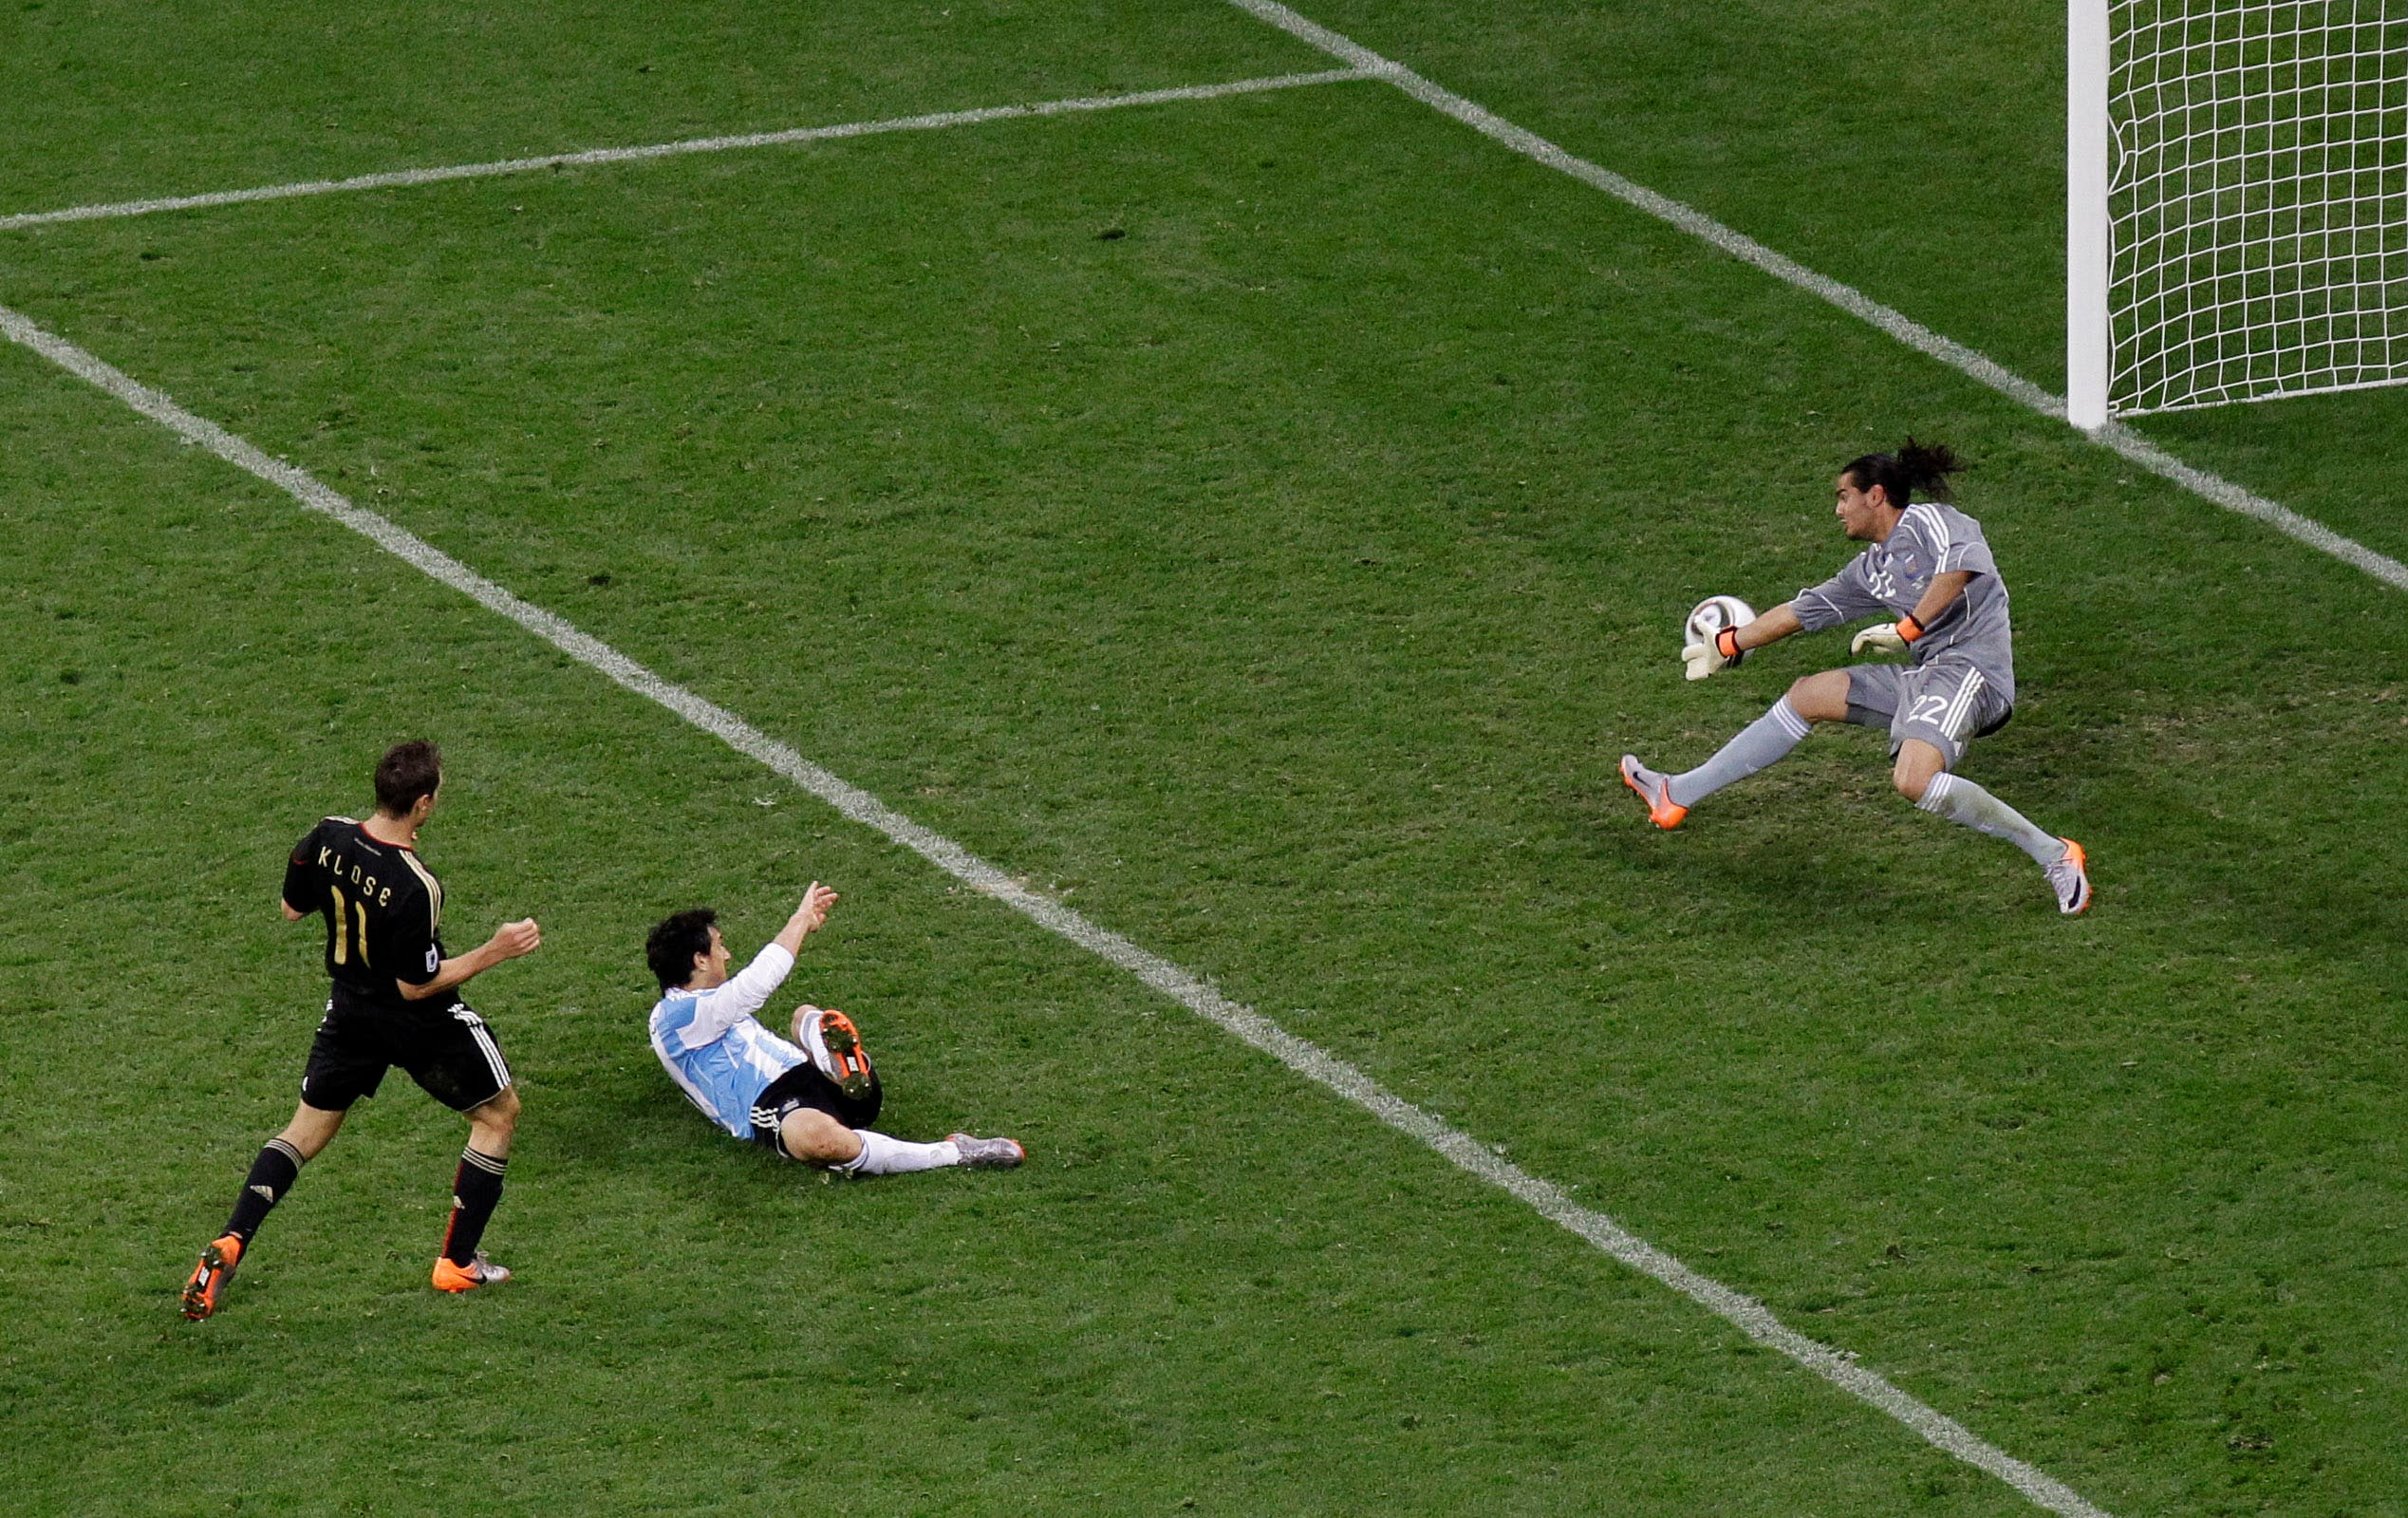 Germany's Miroslav Klose, left, scores his side's fourth goal past Argentina goalkeeper Sergio Romero, right, during the World Cup quarterfinal soccer match between Argentina and Germany at the Green Point stadium in Cape Town, South Africa, Saturday, July 3, 2010. Germany won 4-0. (AP)